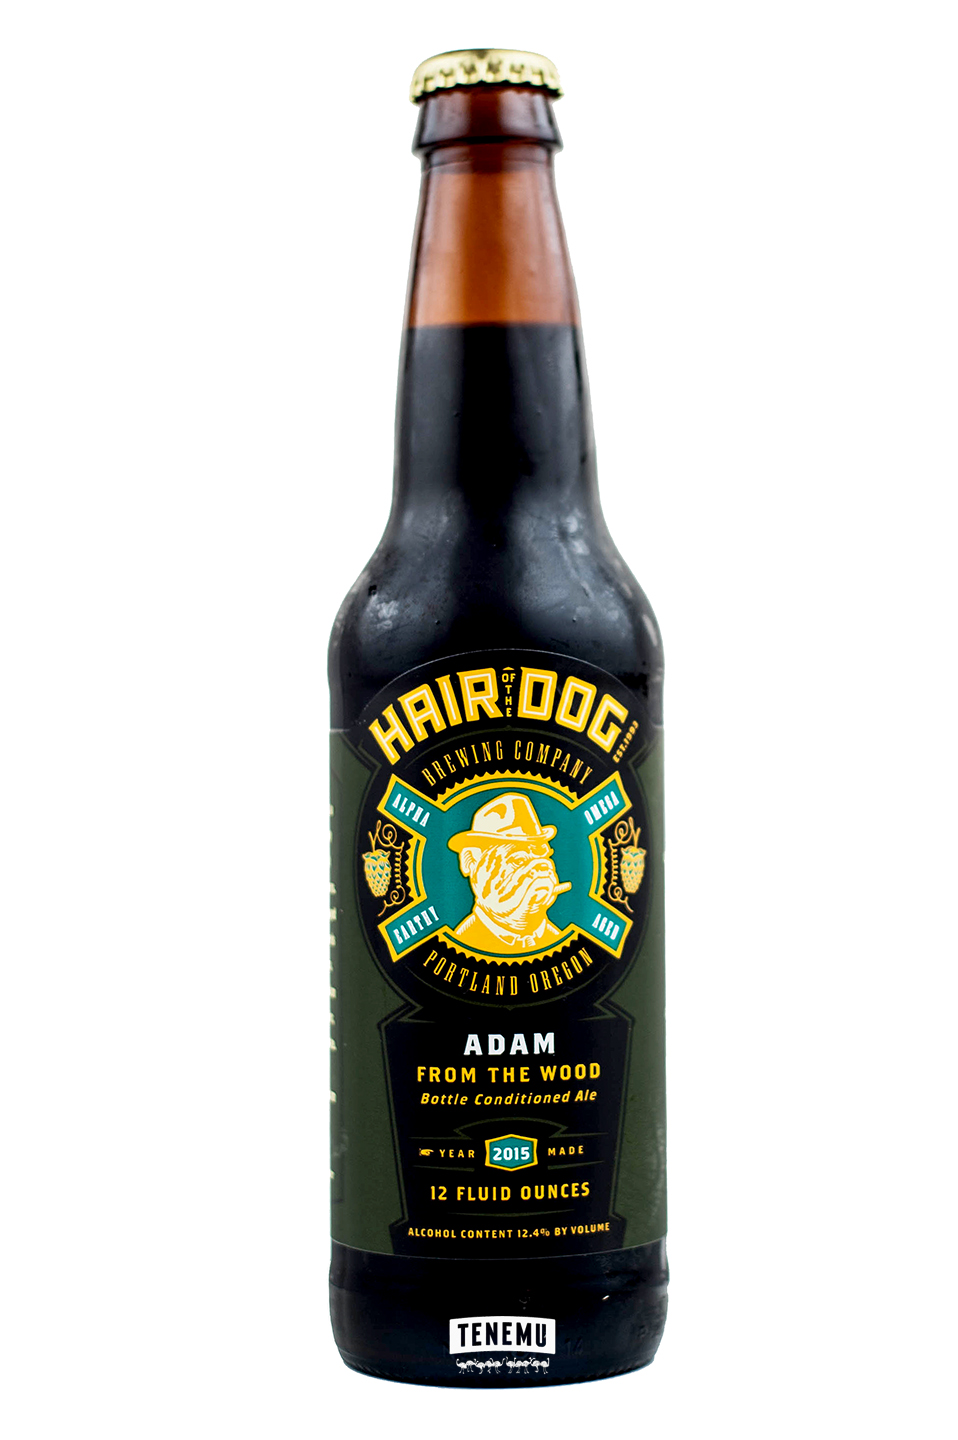 Hair of the Dog Adam from the Wood (2015) bottle